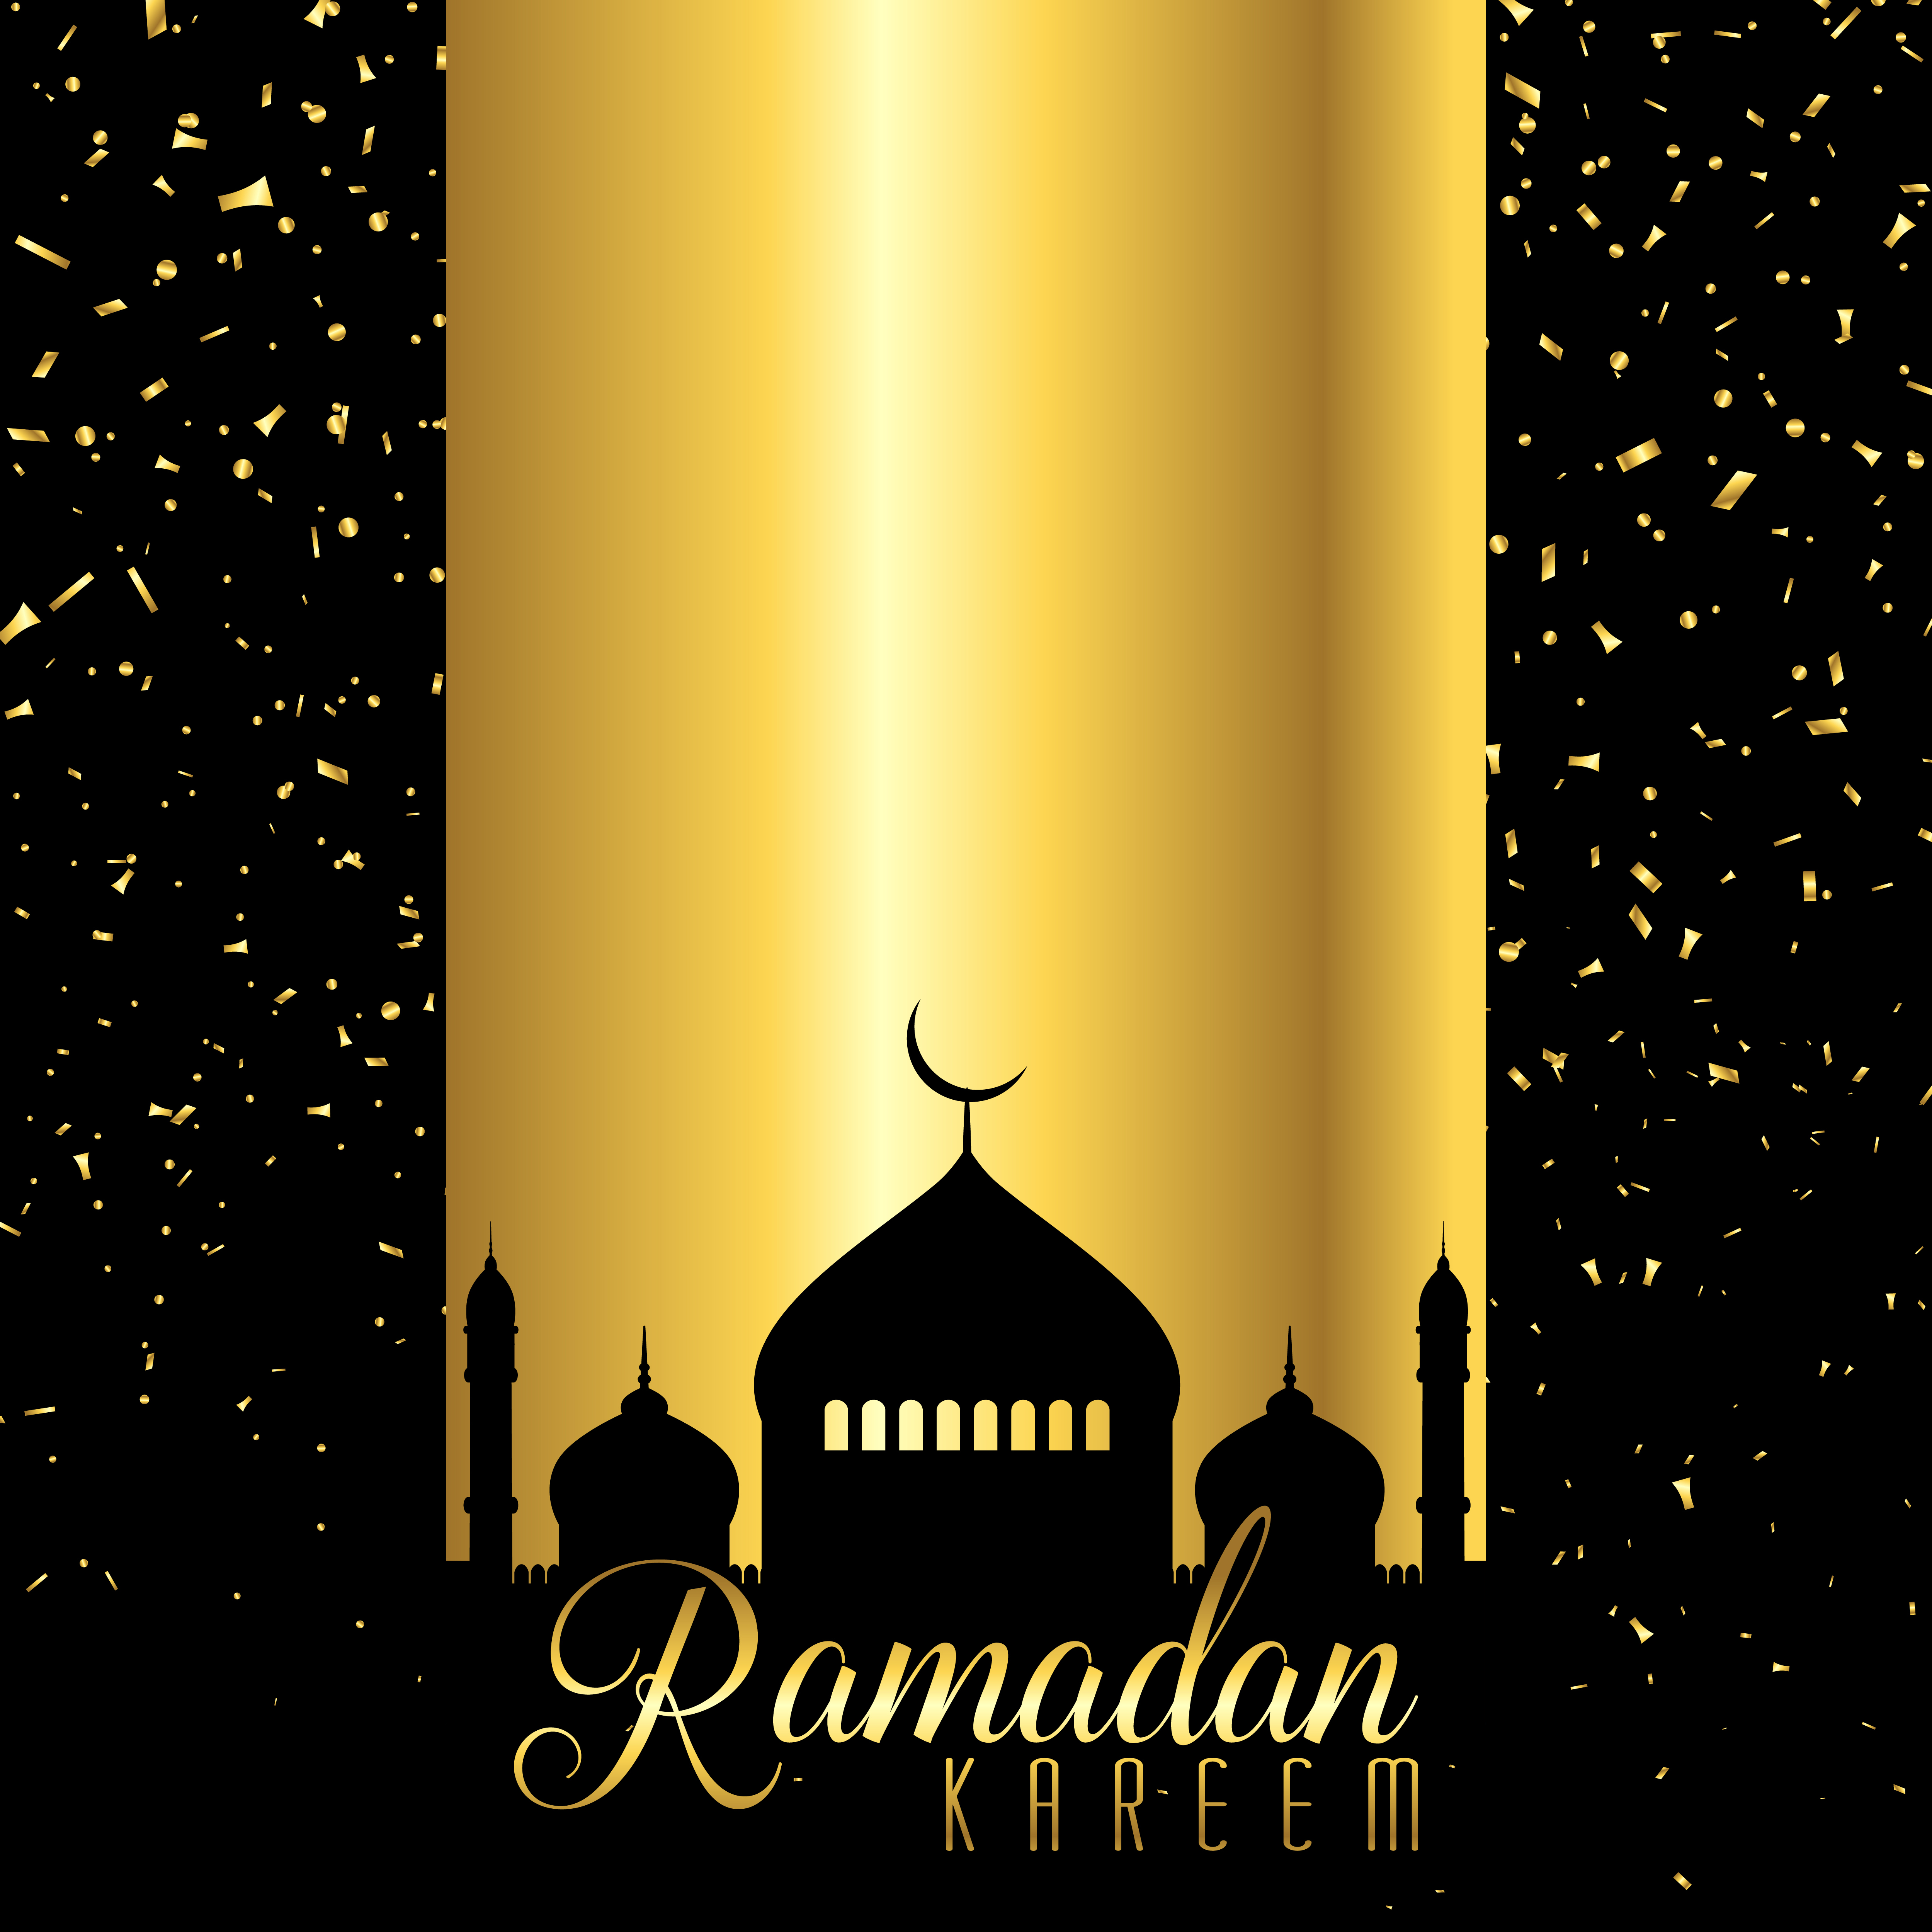 Ramadan Kareem Background With Mosque Silhouette On